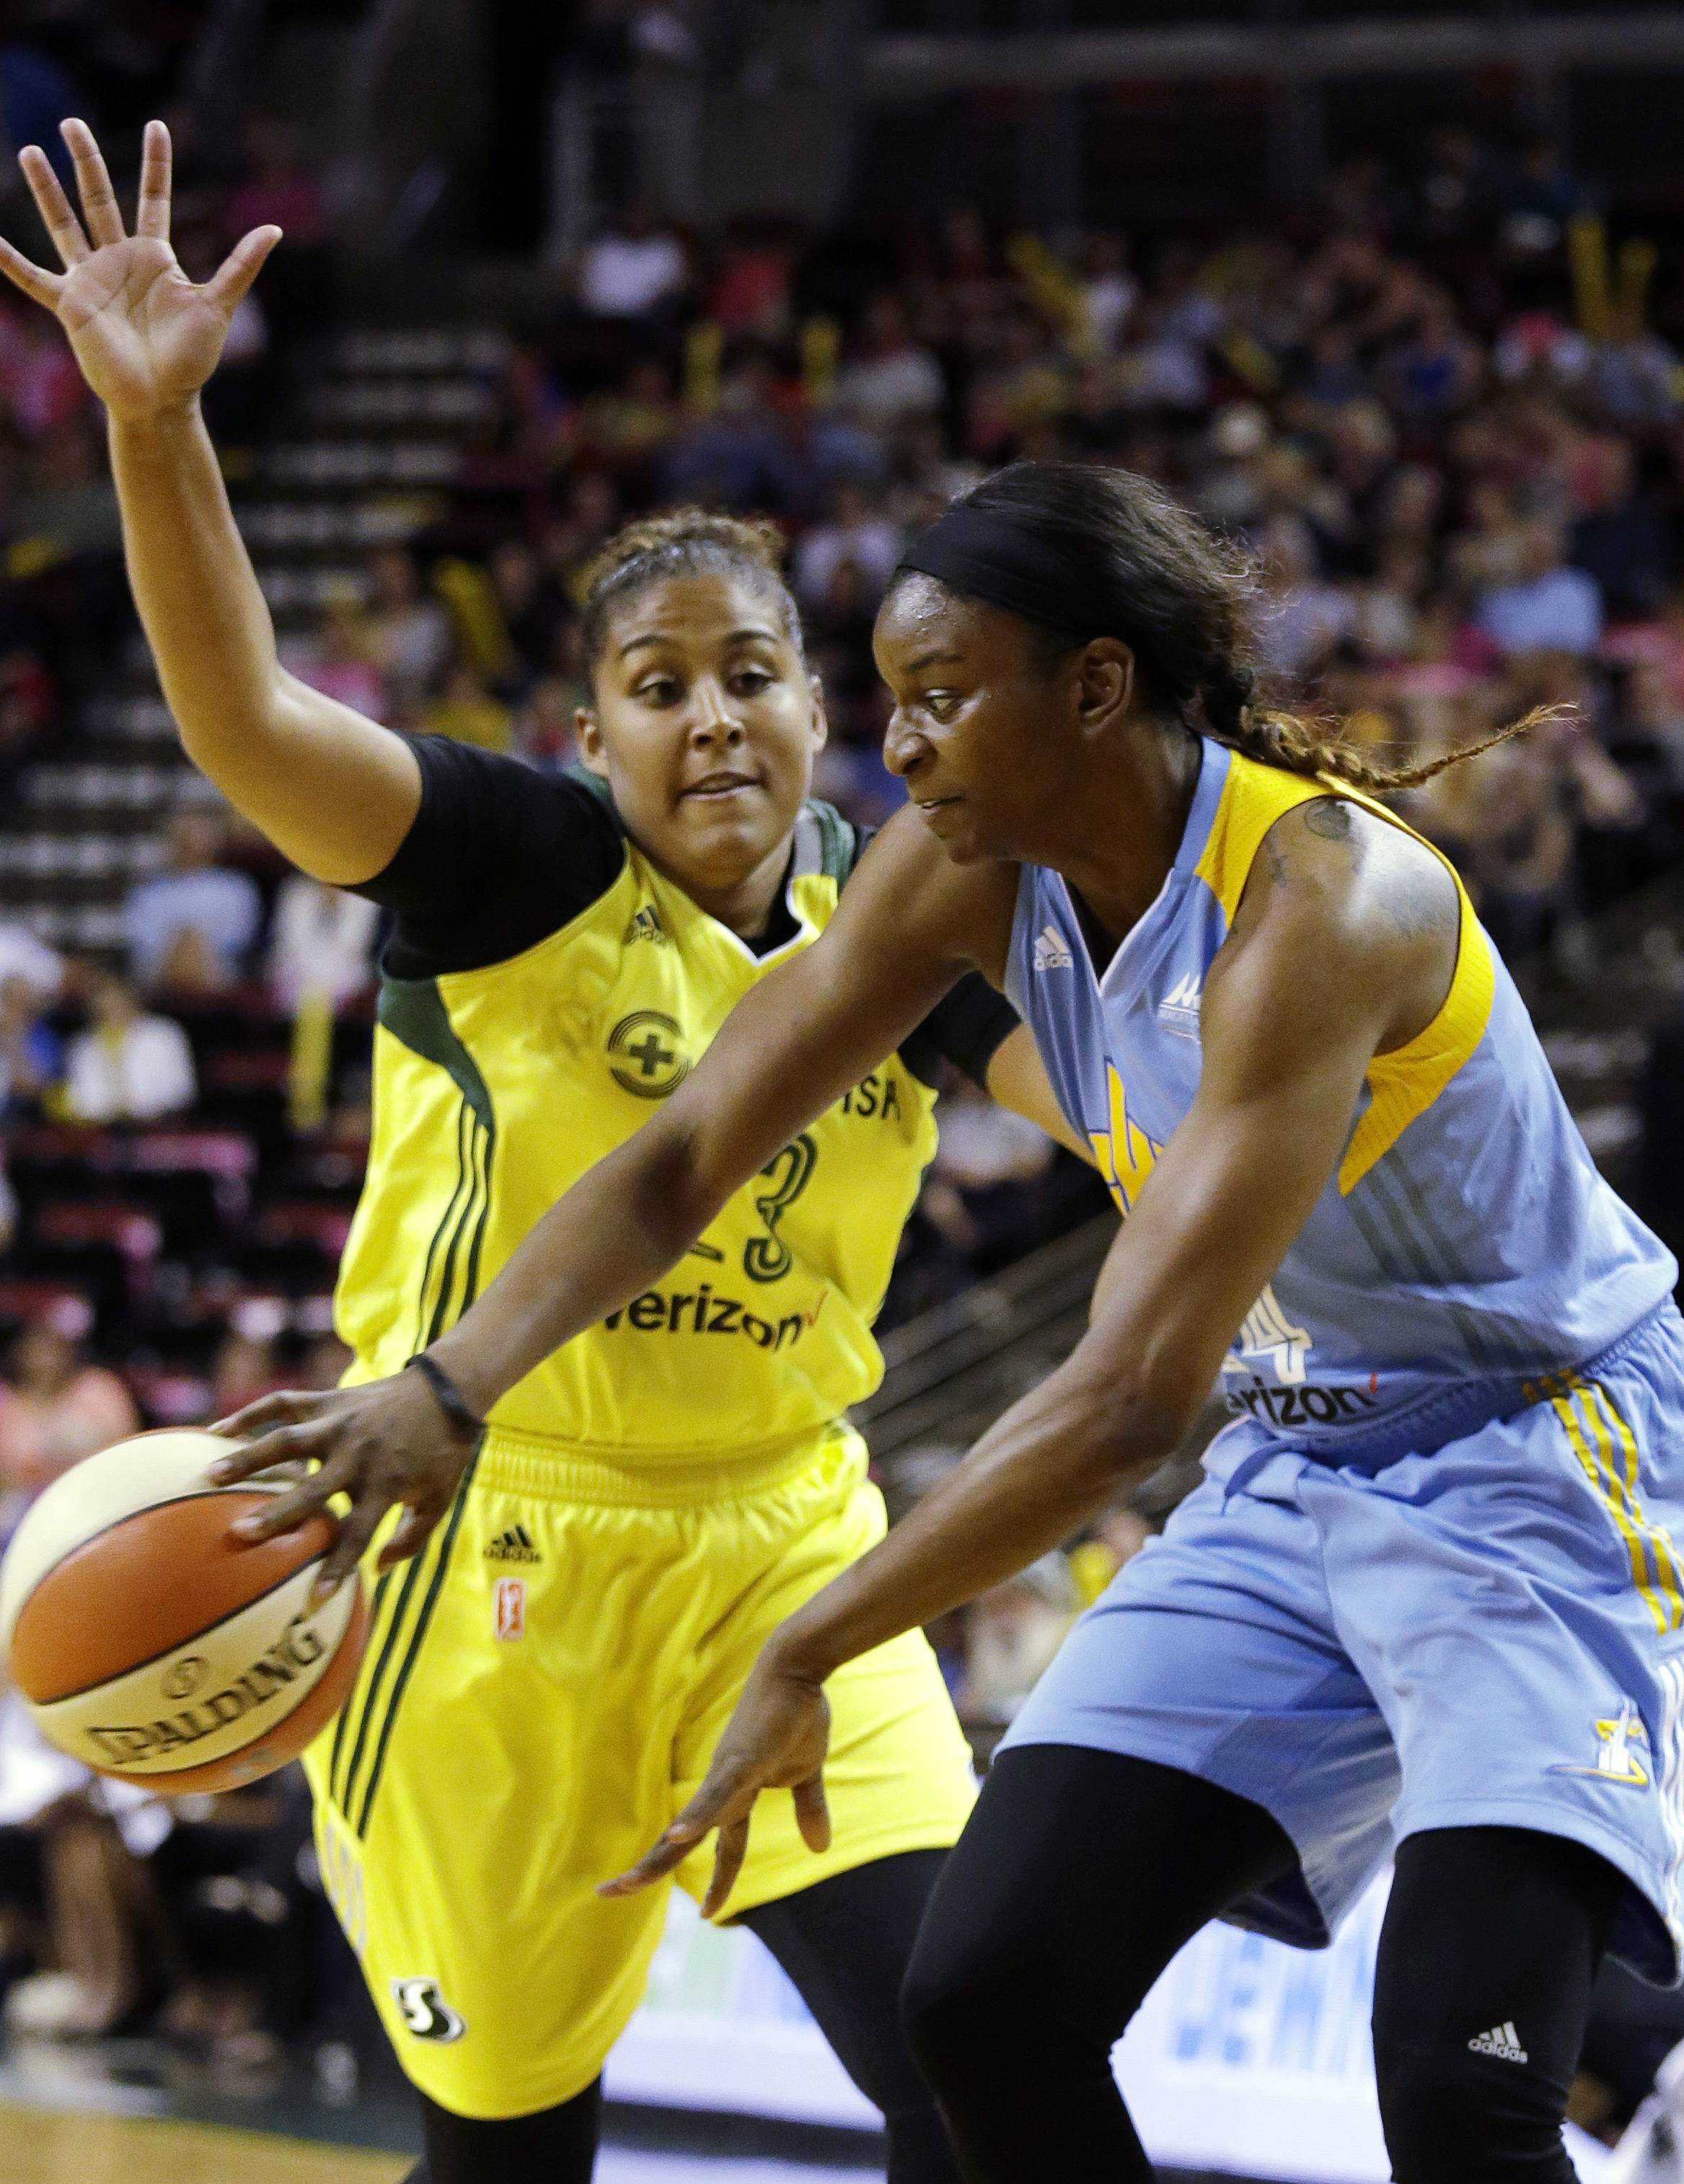 Chicago Sky's Keisha Hampton, right, passes the ball away from Seattle Storm's Kaleena Mosqueda-Lewis during the first half of a WNBA basketball game Tuesday, July 18, 2017, in Seattle.